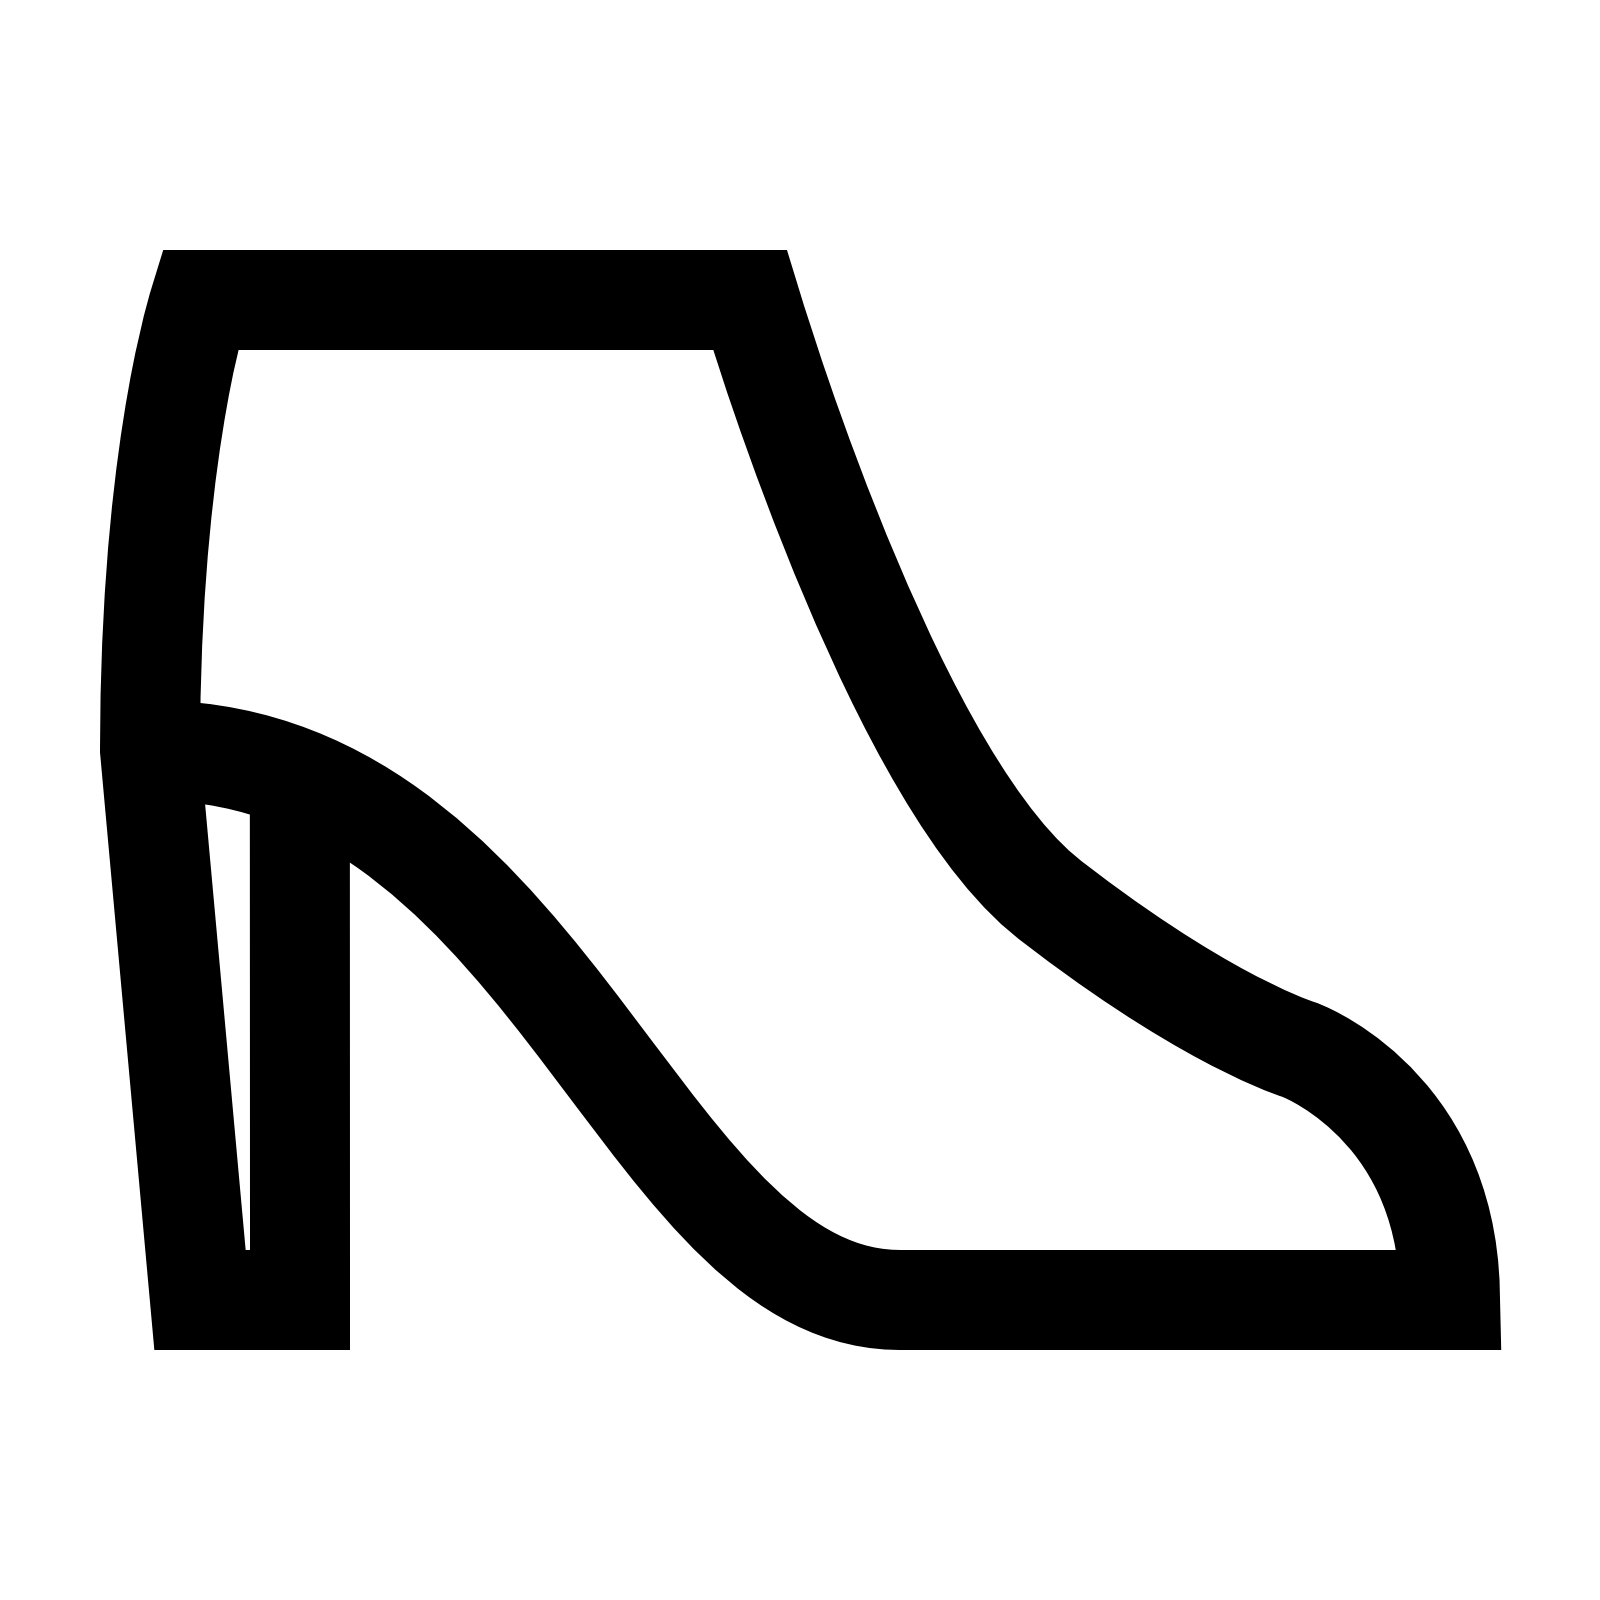 Clip shoes women's. Sneakers clipart library